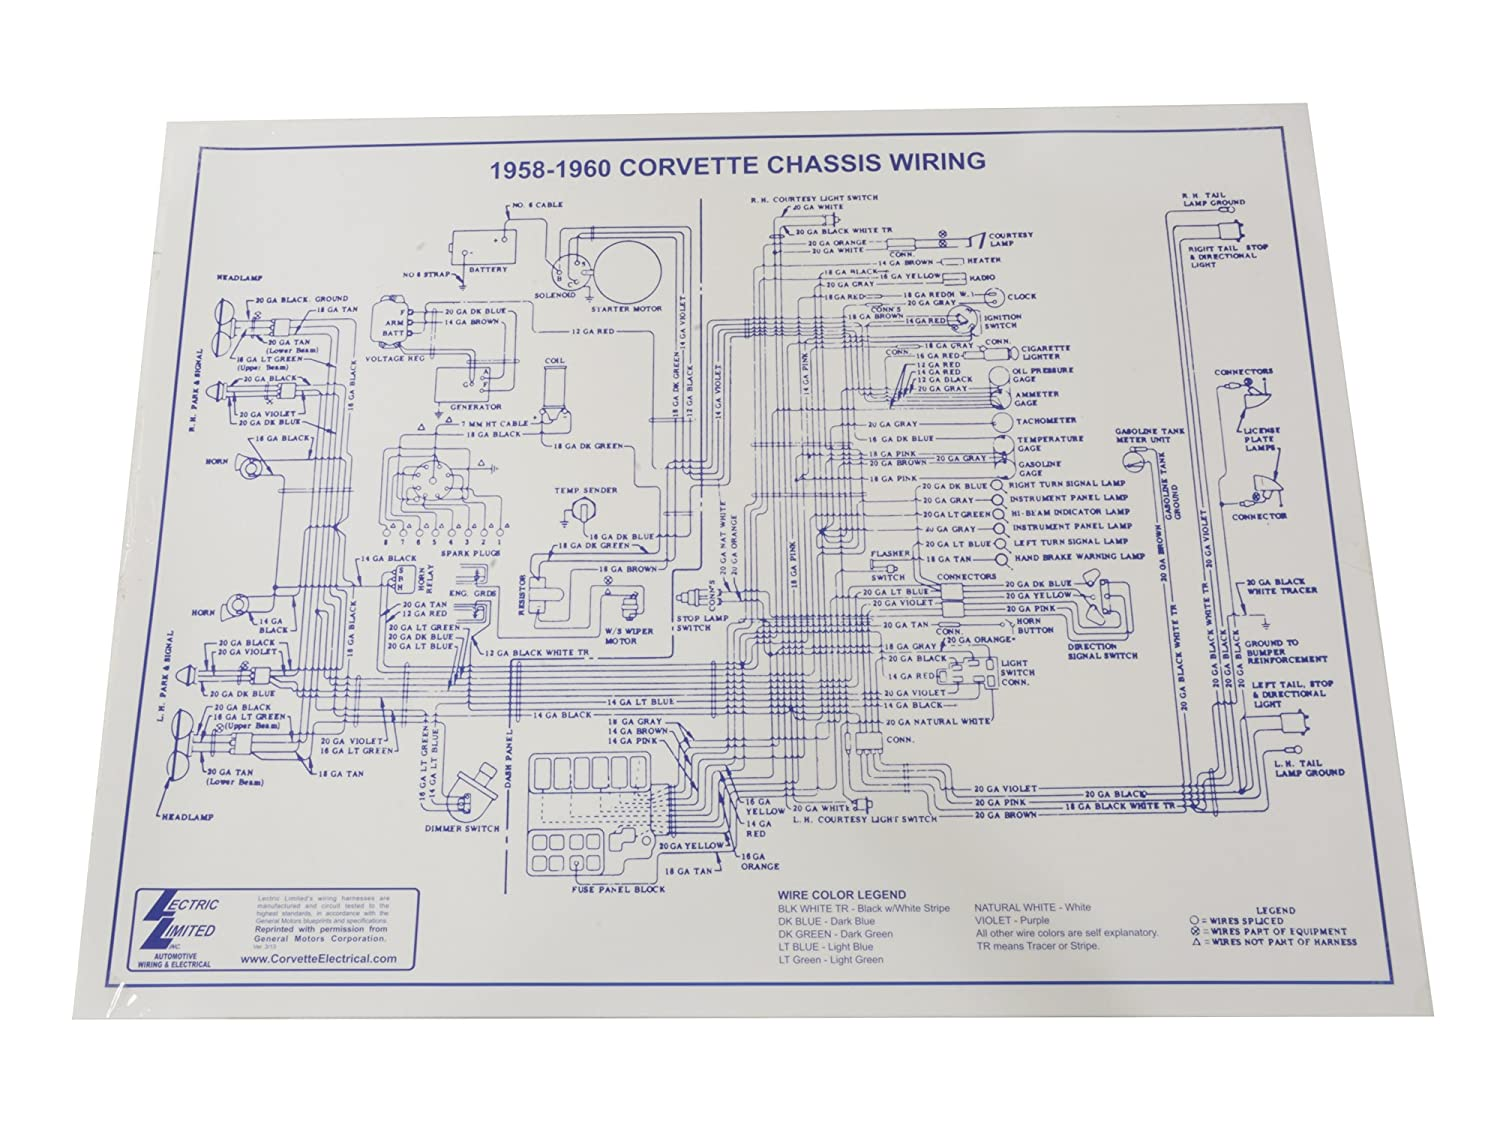 Electrical Drawings Electrical Schematic Wiring Diagrams And Blue